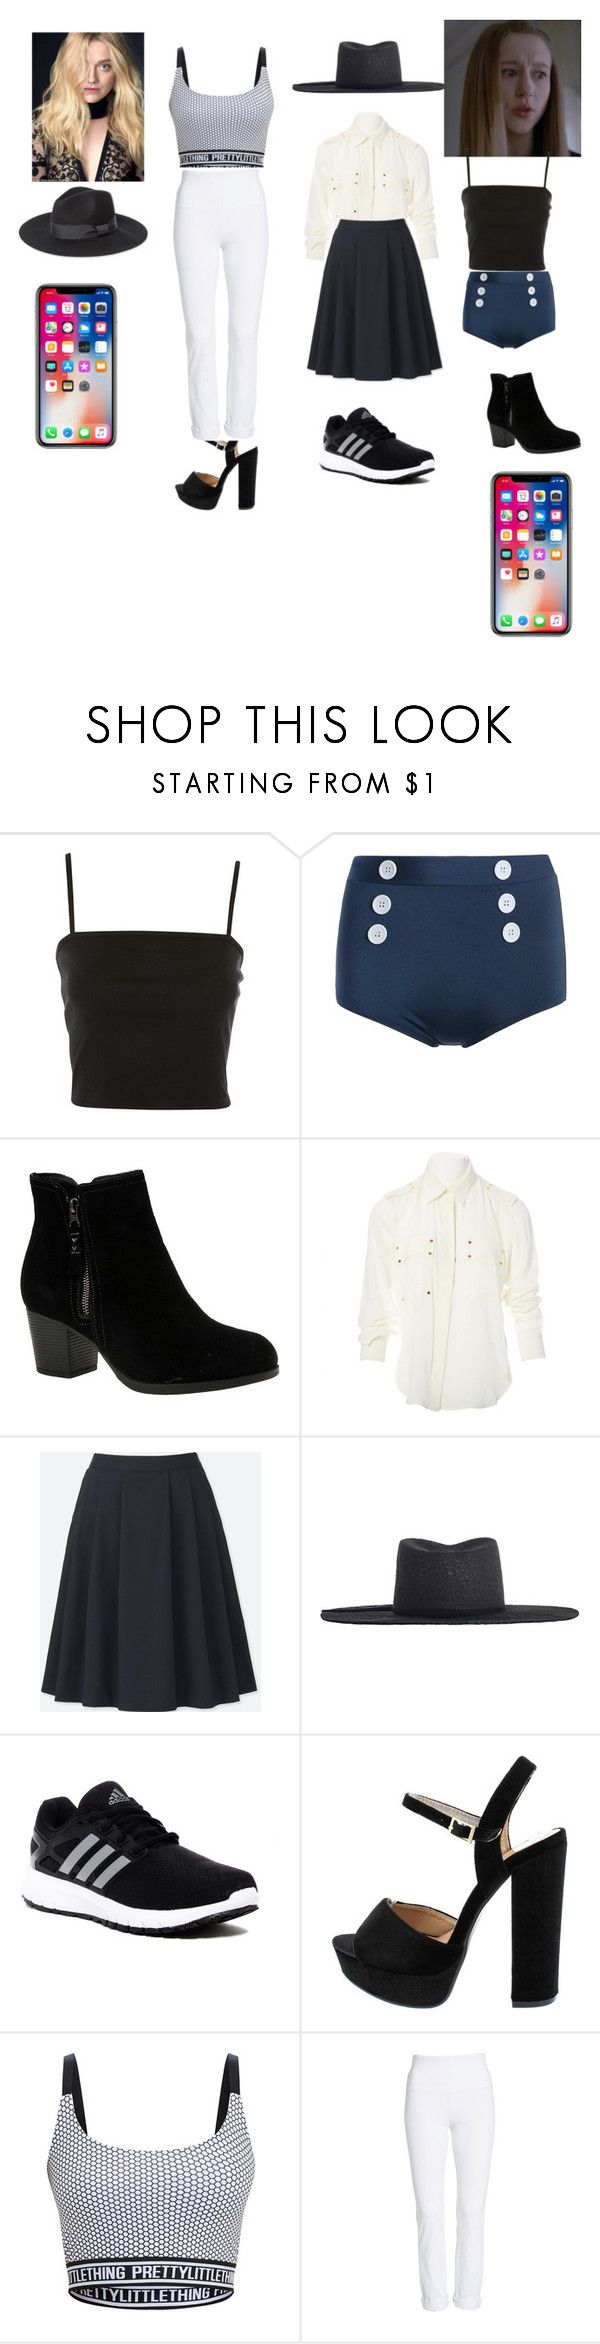 """Ootd Jane and Trya Kjell"" by queen-p-bxtch on Polyvore featuring Topshop, Skechers, Tom Ford, Uniqlo, Zimmermann, adidas and Lyssé Leggings"